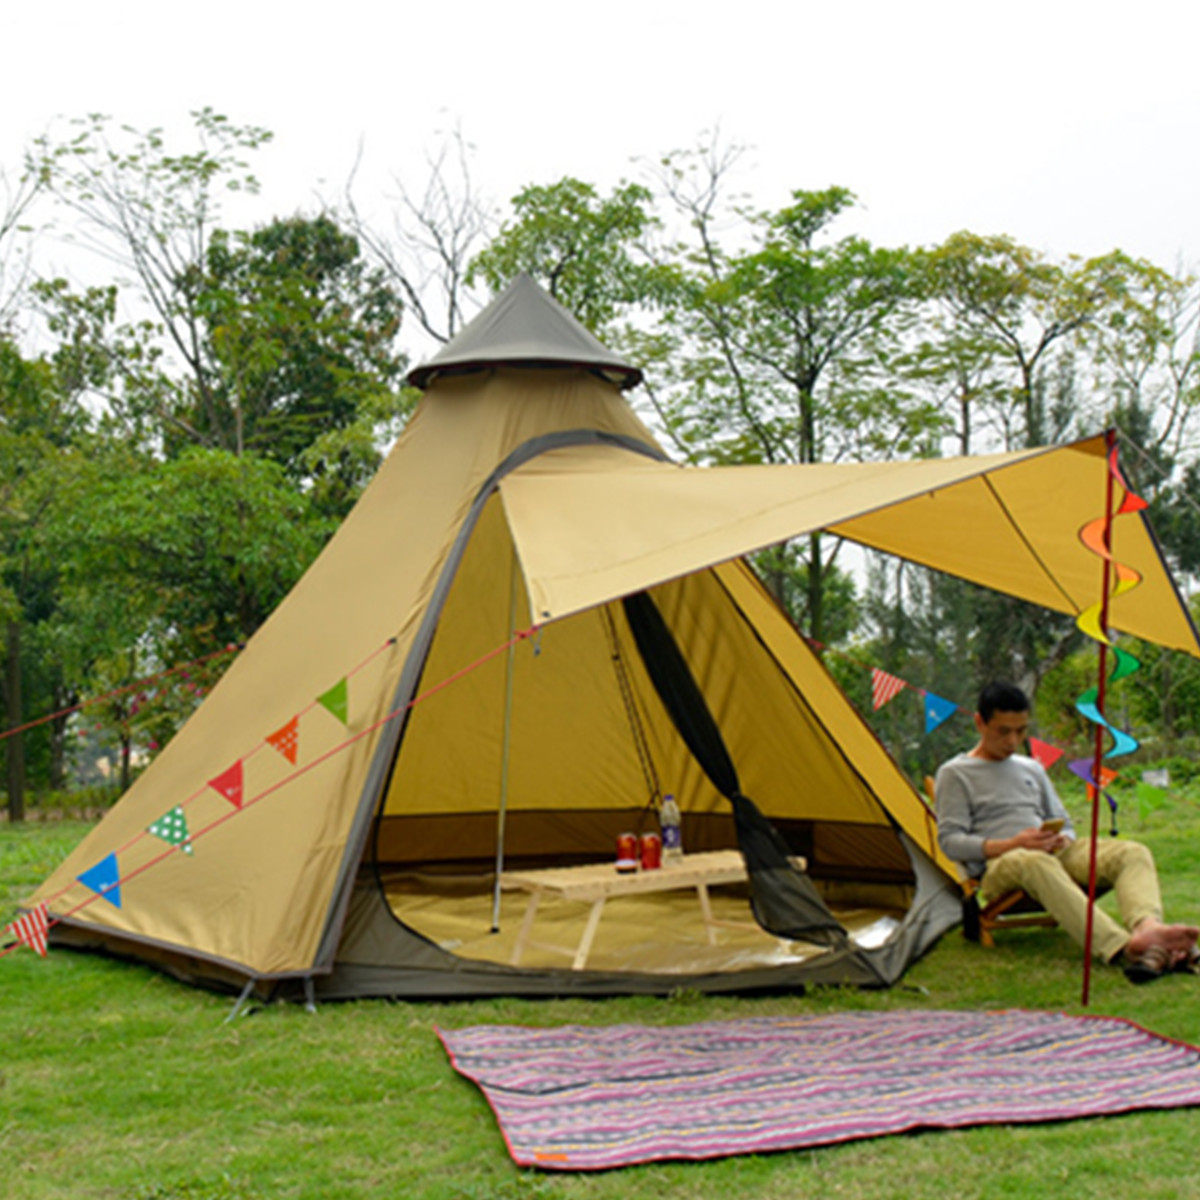 3-4 People Outdoor Camping Tent Indian Style Pyramid ...